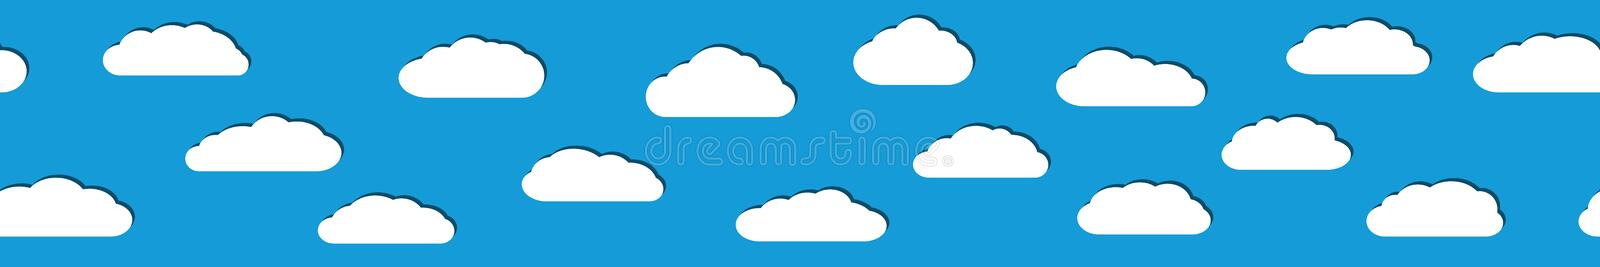 Seamless banner of white clouds with shadows. Seamless horizontal banner of white clouds with shadows in flat style on light blue background vector illustration